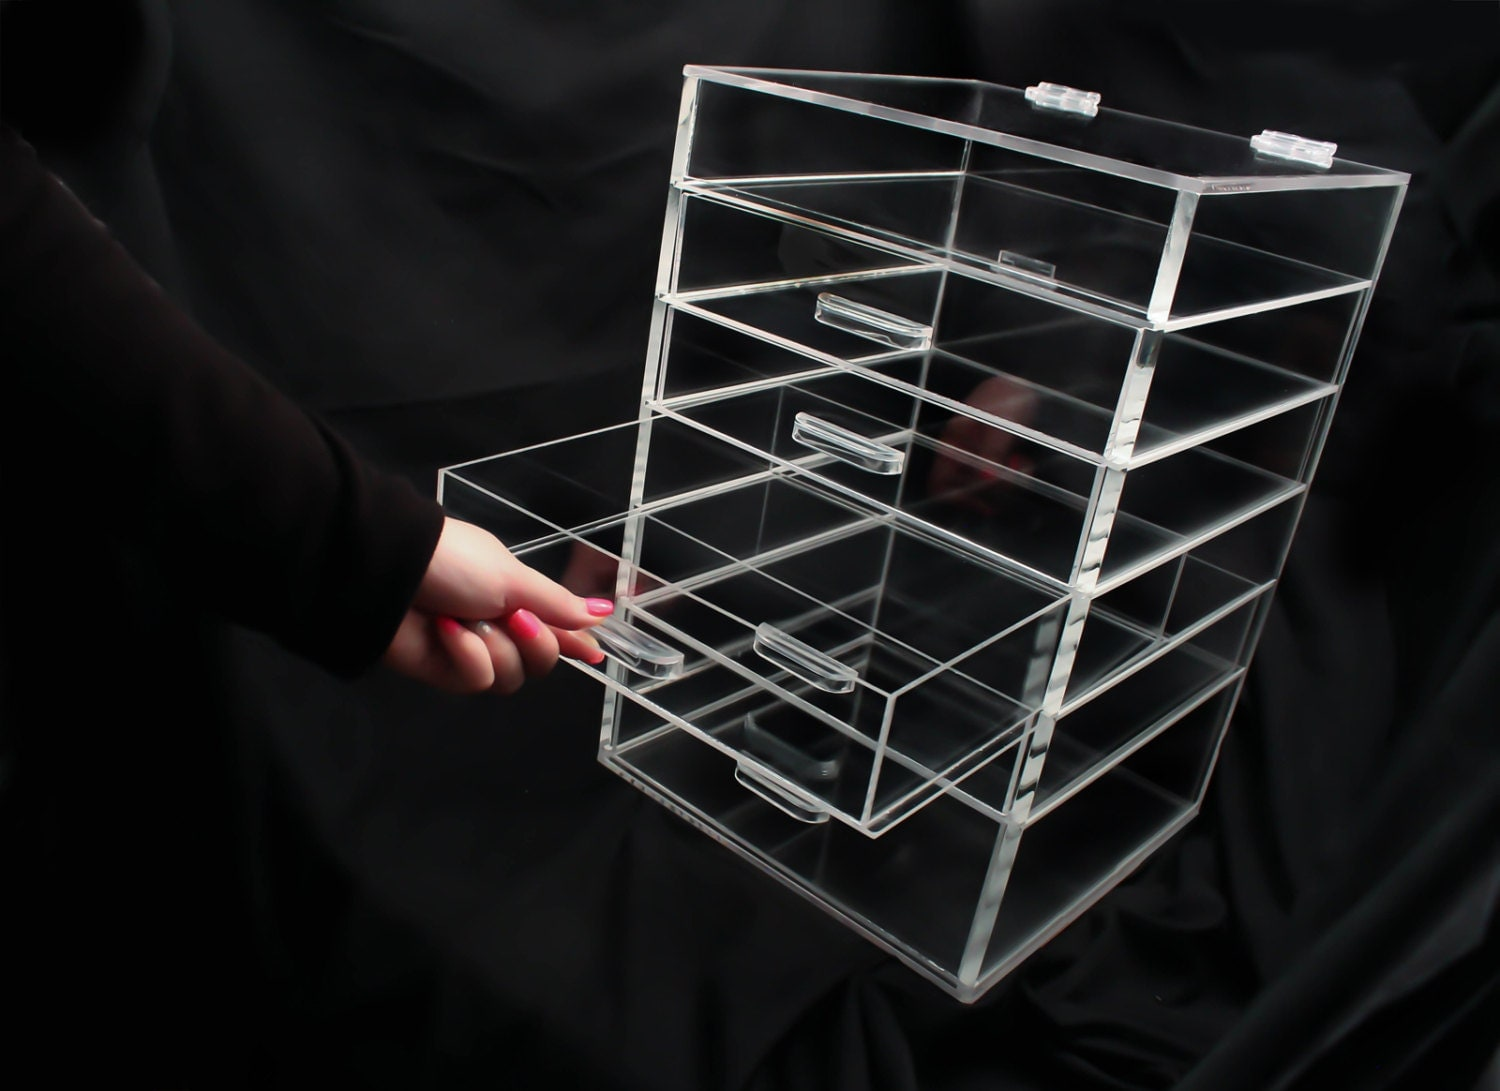 ... correlate a Acrylic makeup organizer cube clear box makeup case